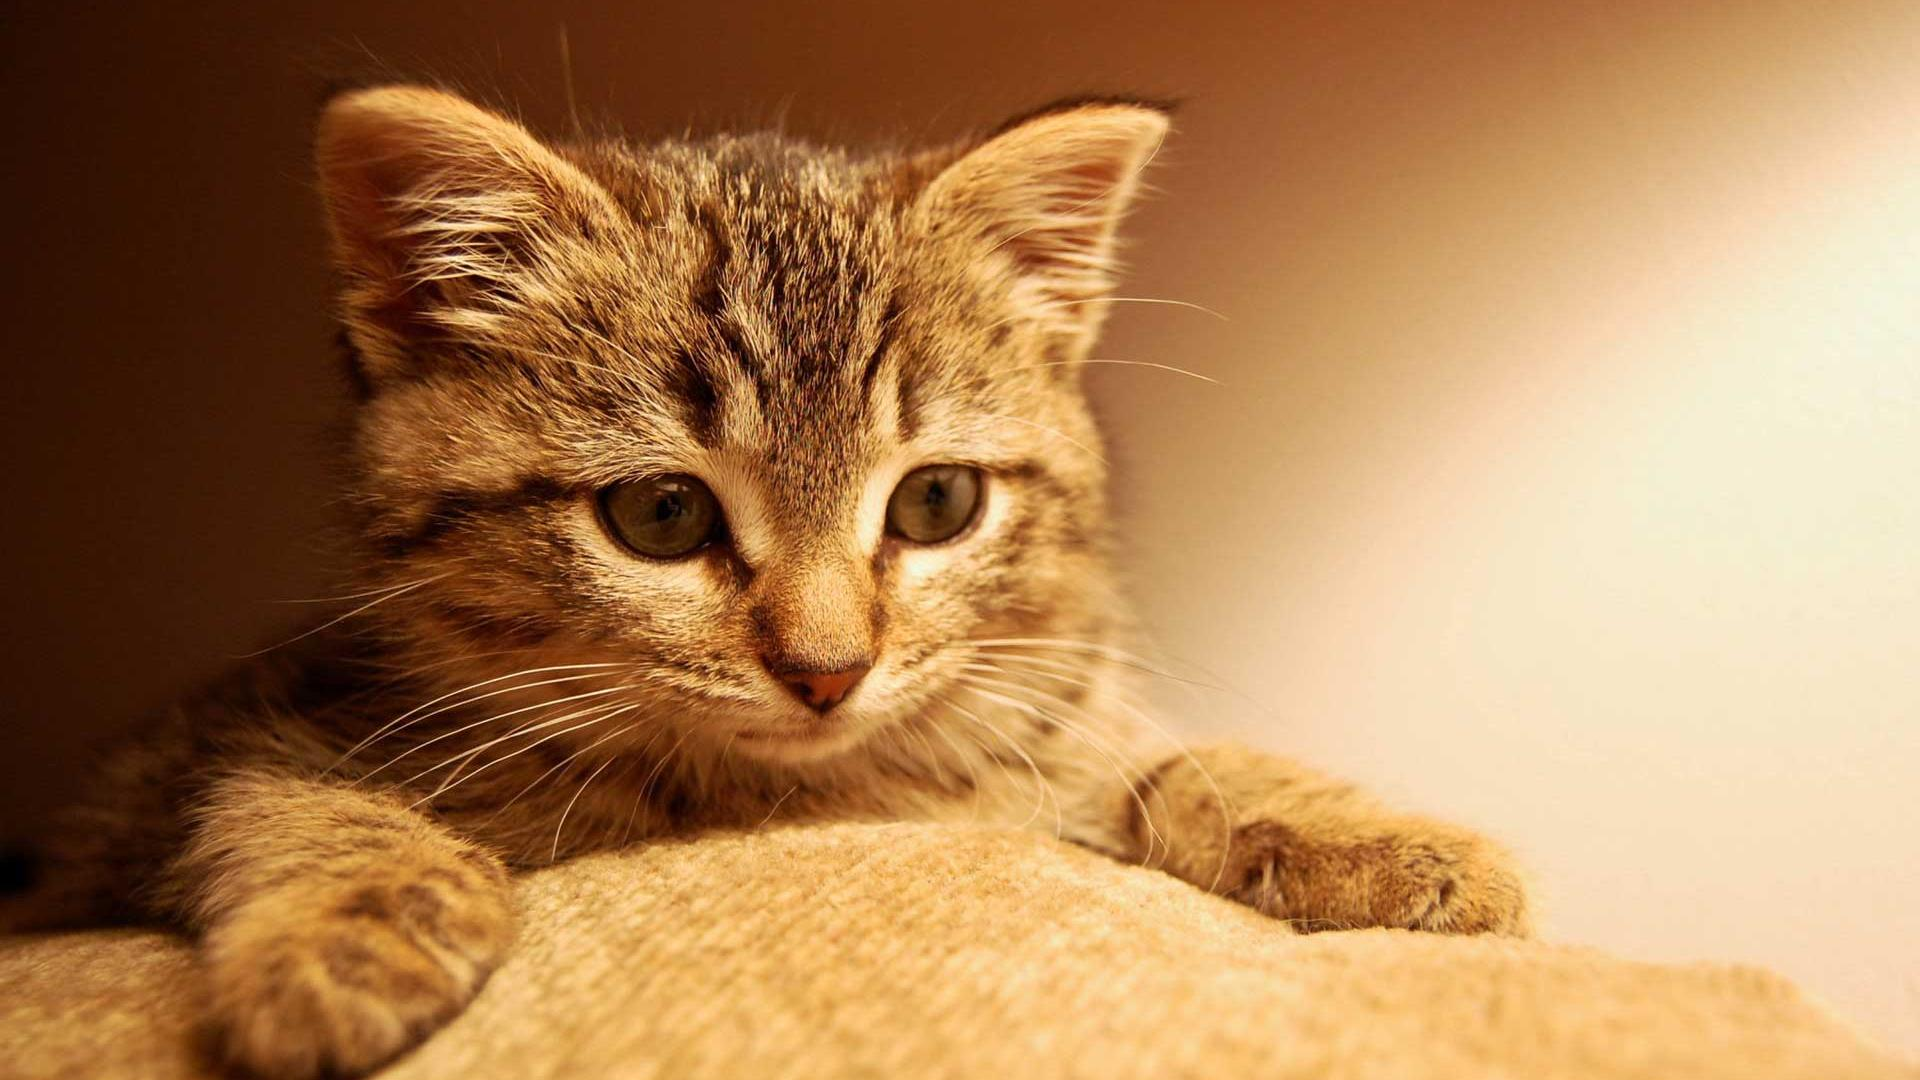 cute backgrounds background wallpaper kitty cat images 1920x1080